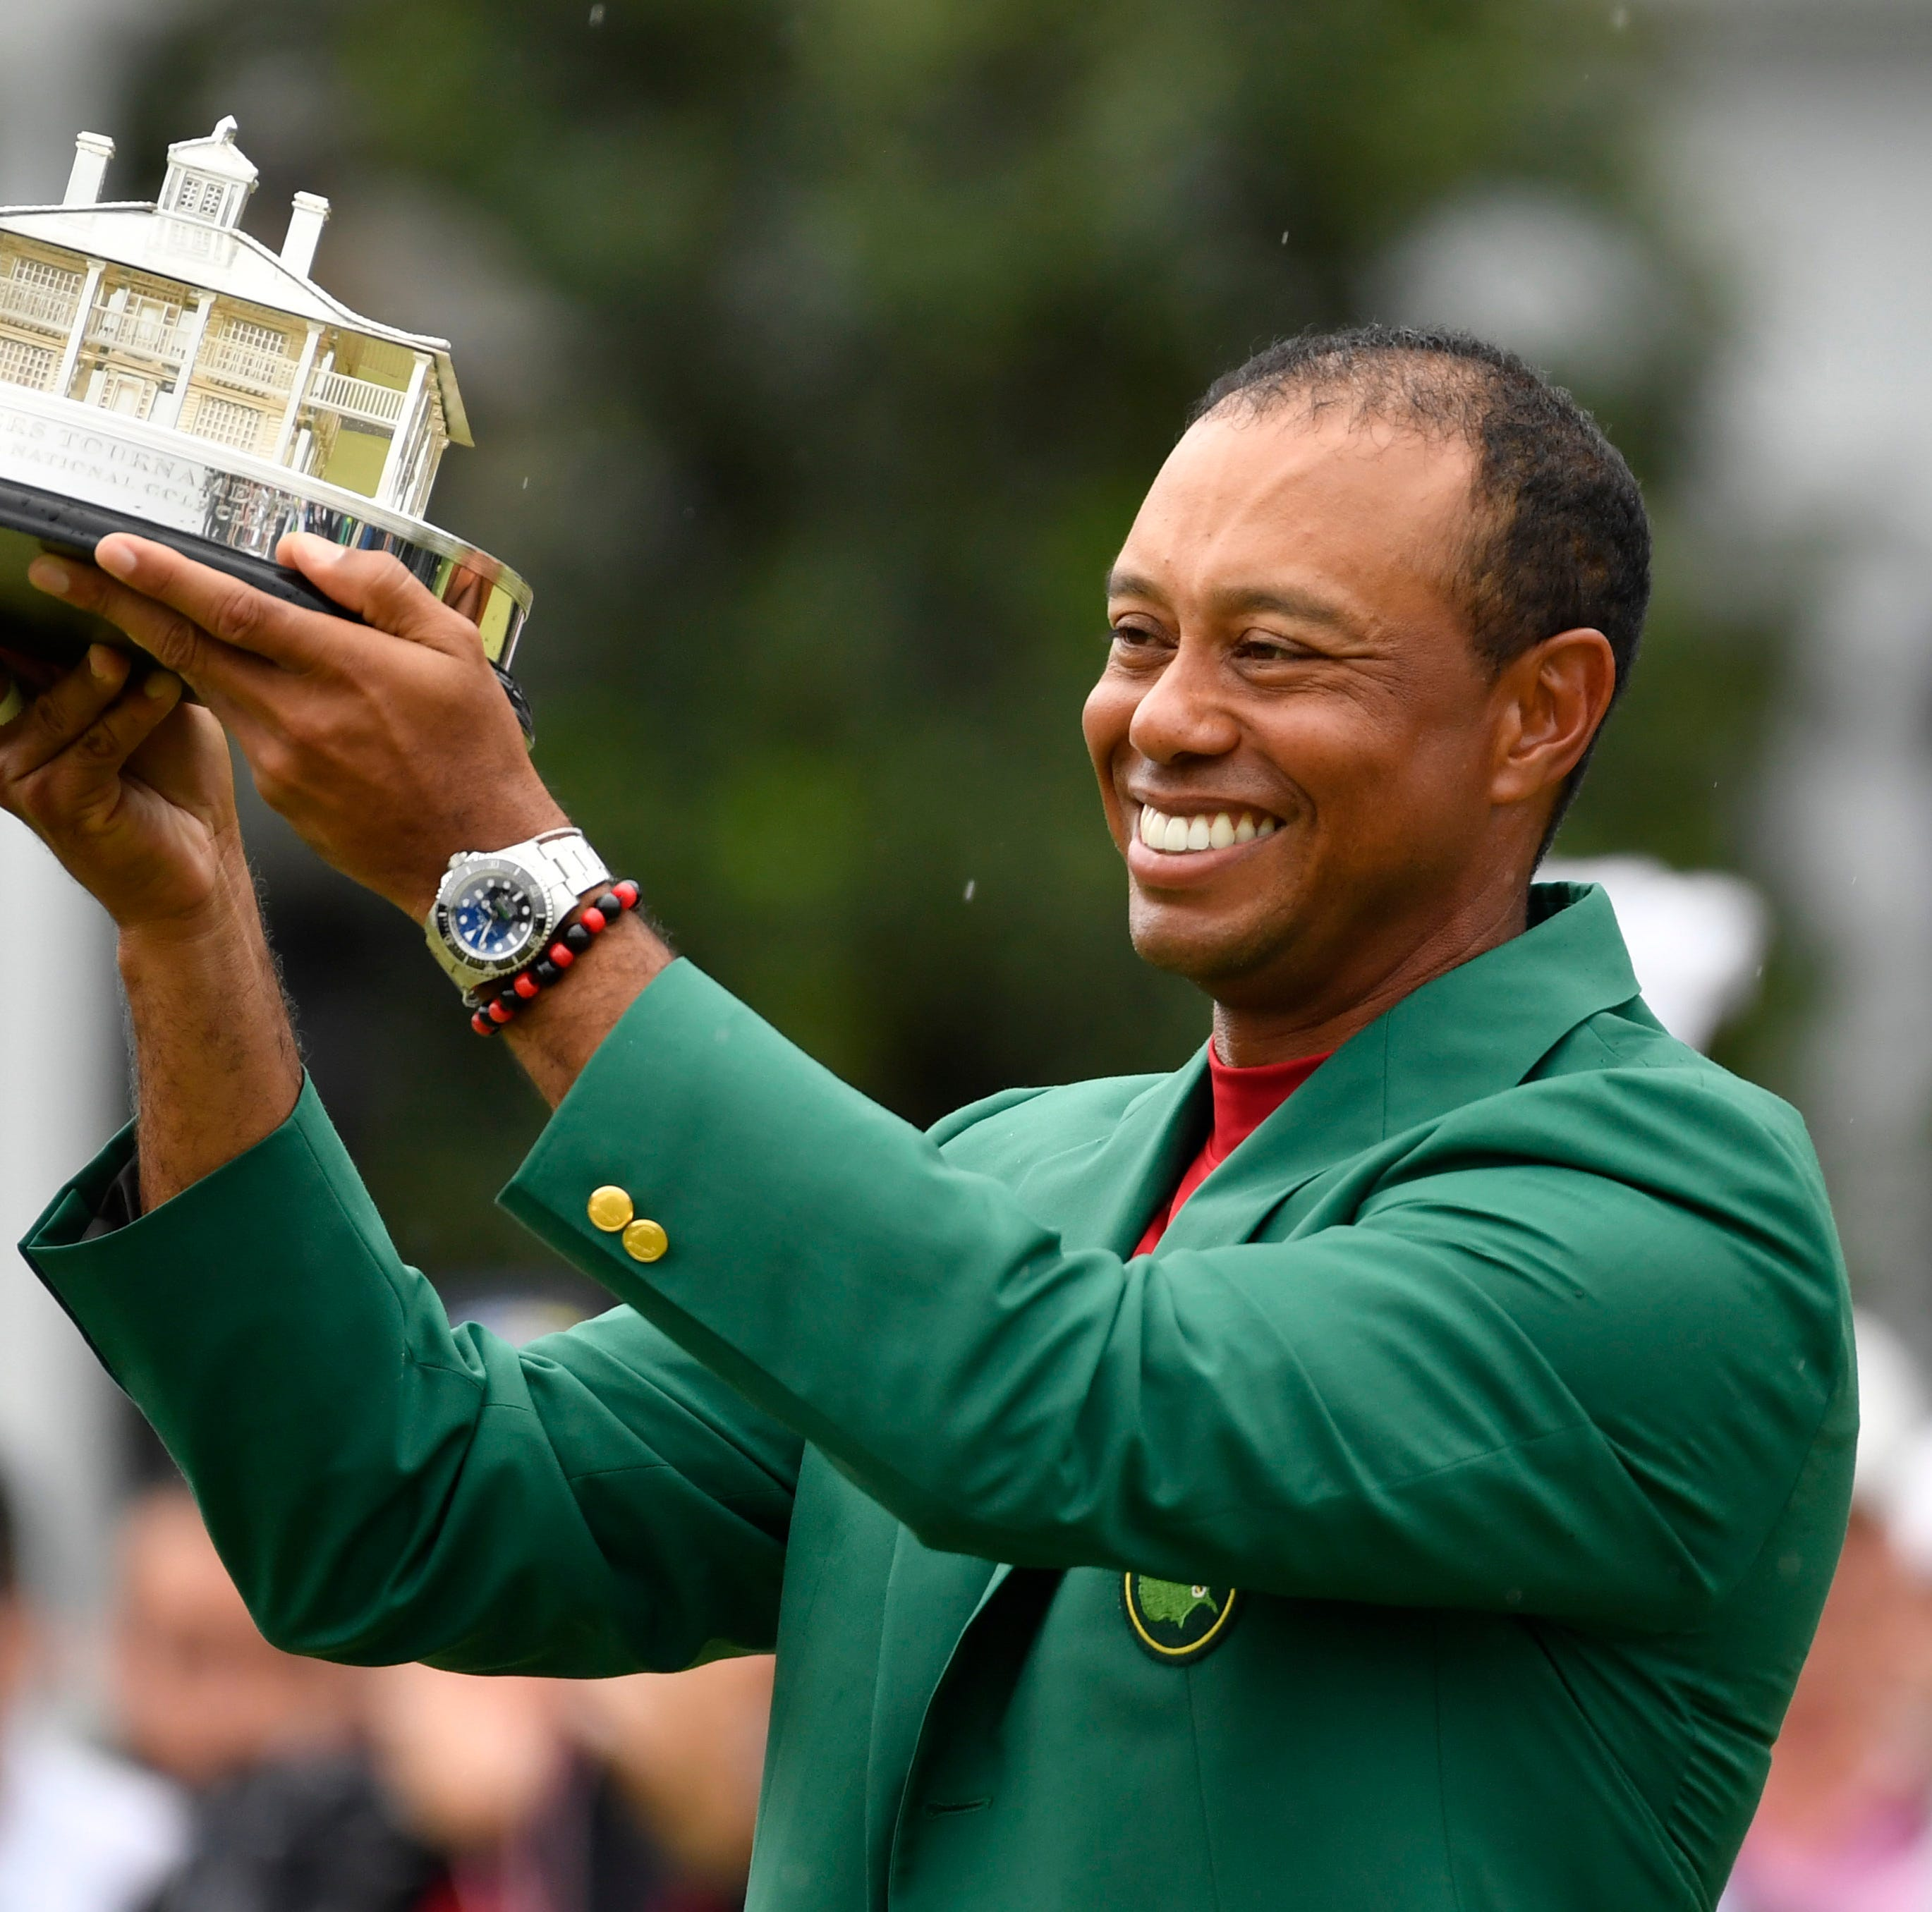 Locals react as Tiger Woods wins first Masters since 2005